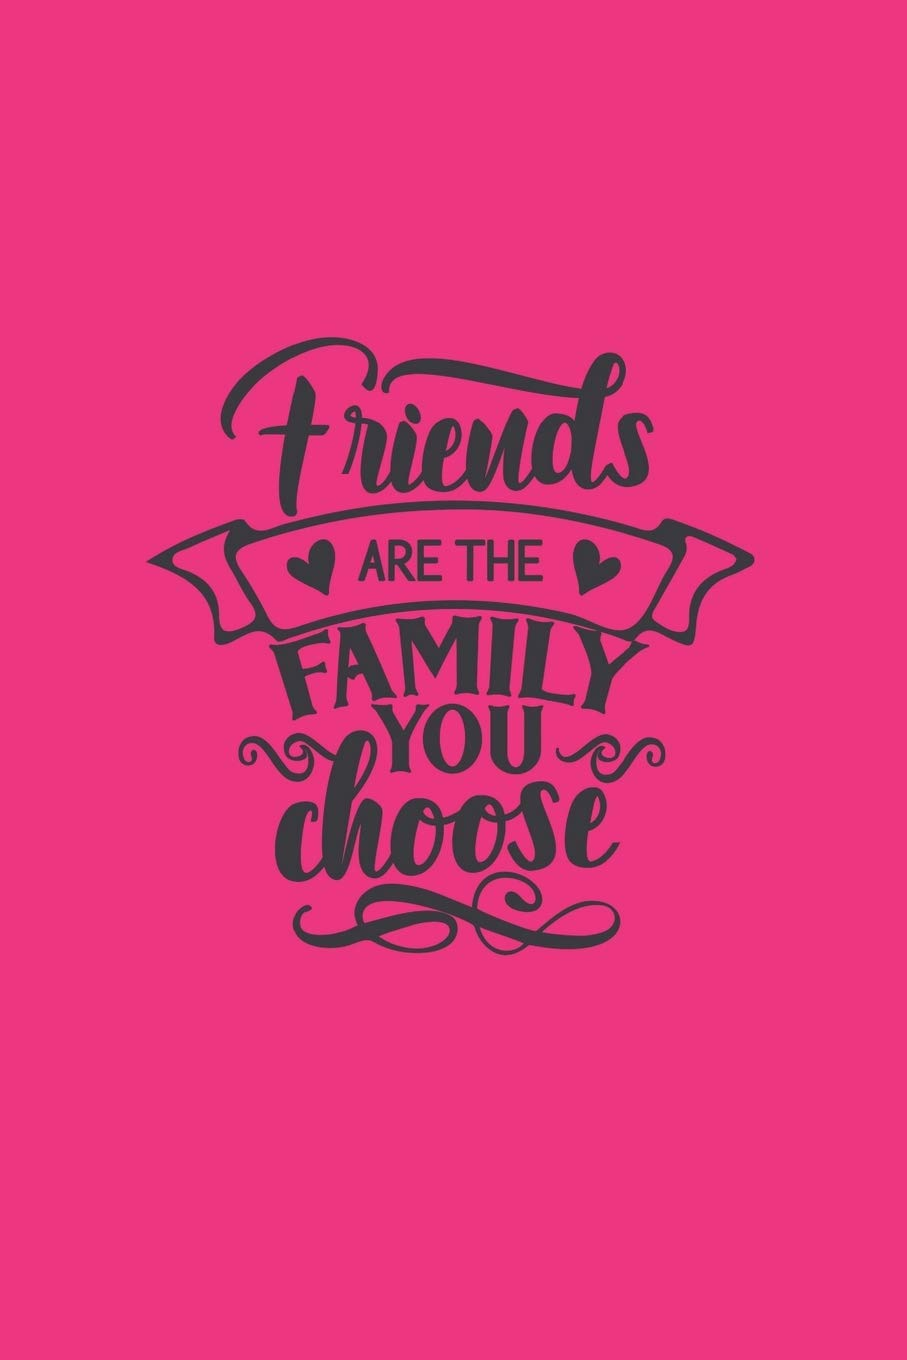 Friends Are The Family You Choose Friendship Quote Cover Journal Lined Journal To Write In Gift For A Best Friend Creations Joyful 9781692402402 Amazon Com Books